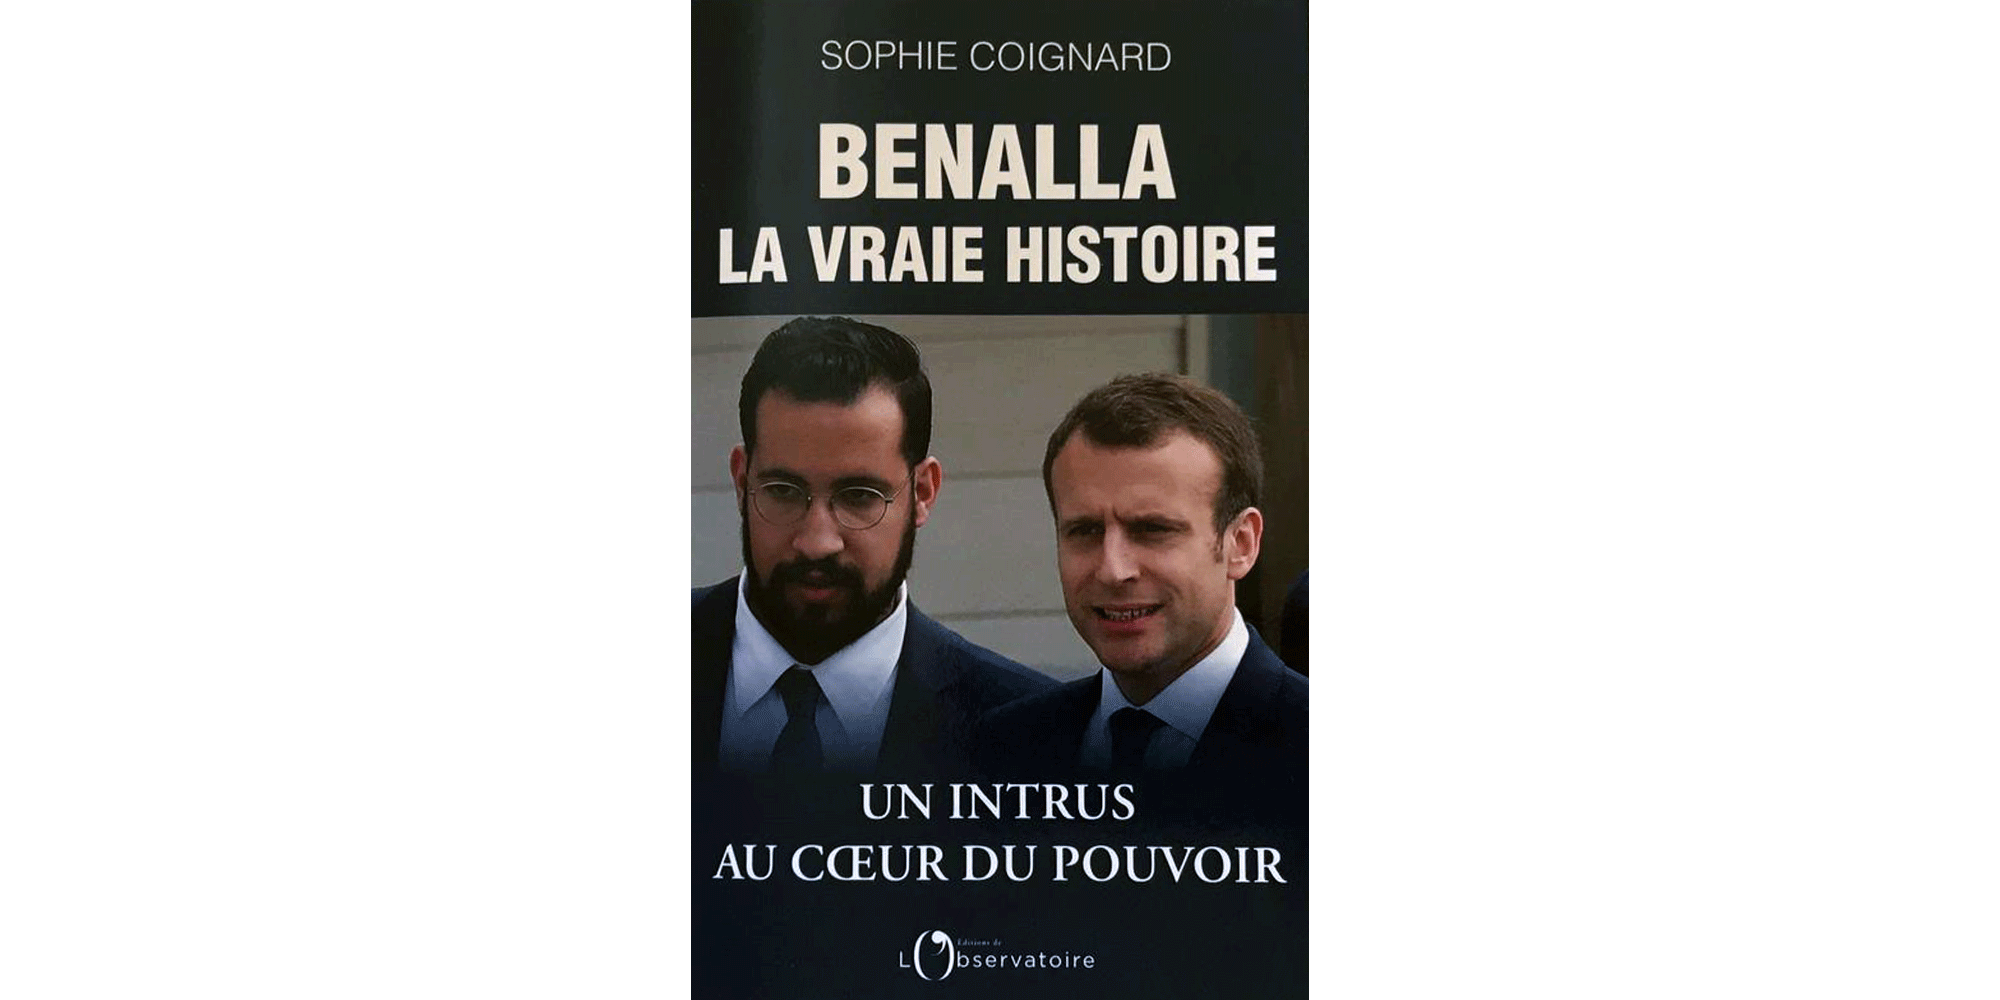 Benalla Le Livre Secret Qui Raconte Les Coulisses De Son